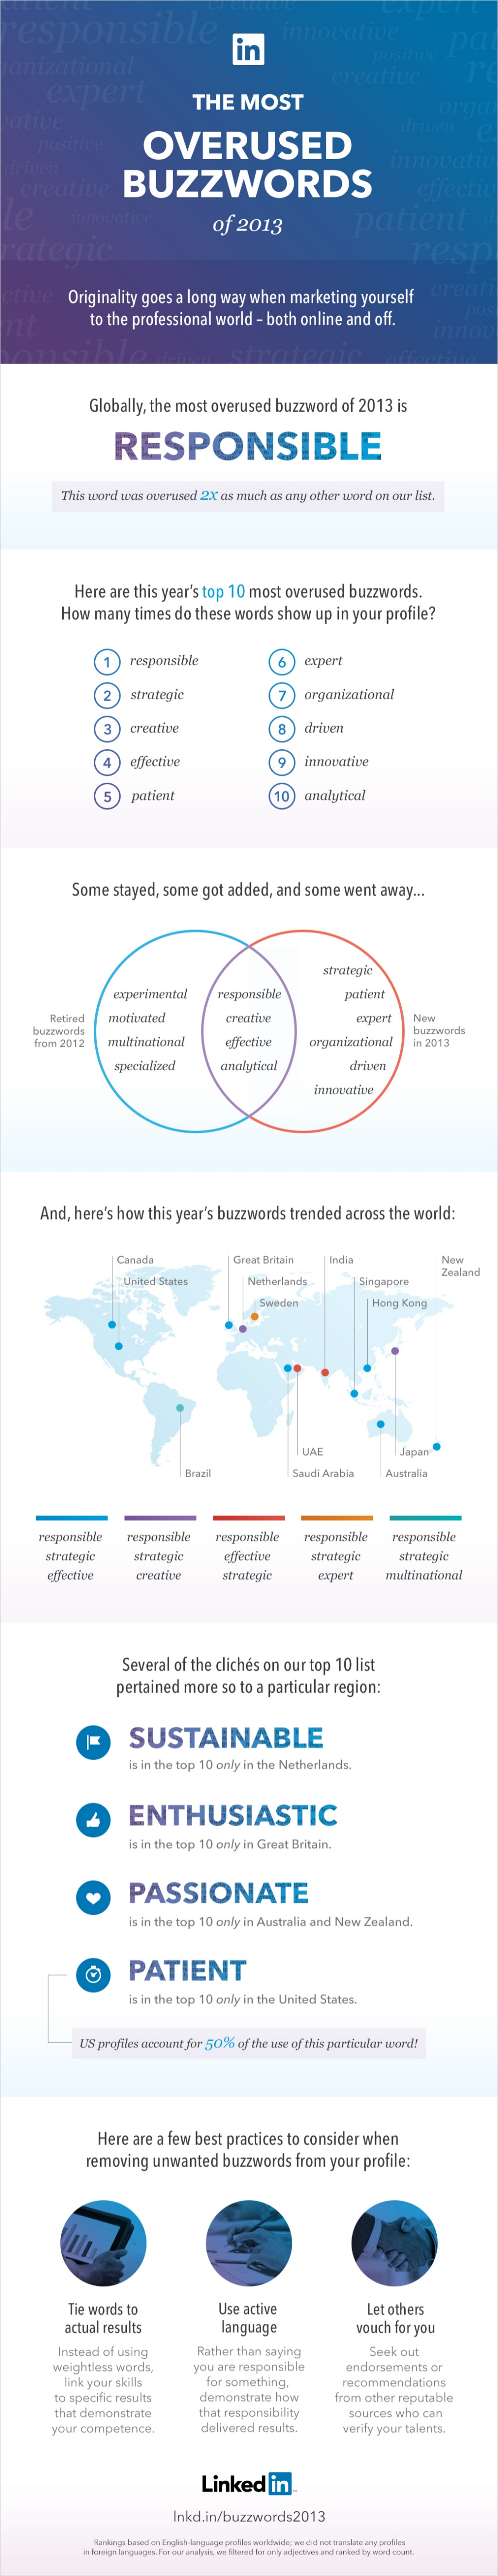 infographic-linkedin-buzzwords